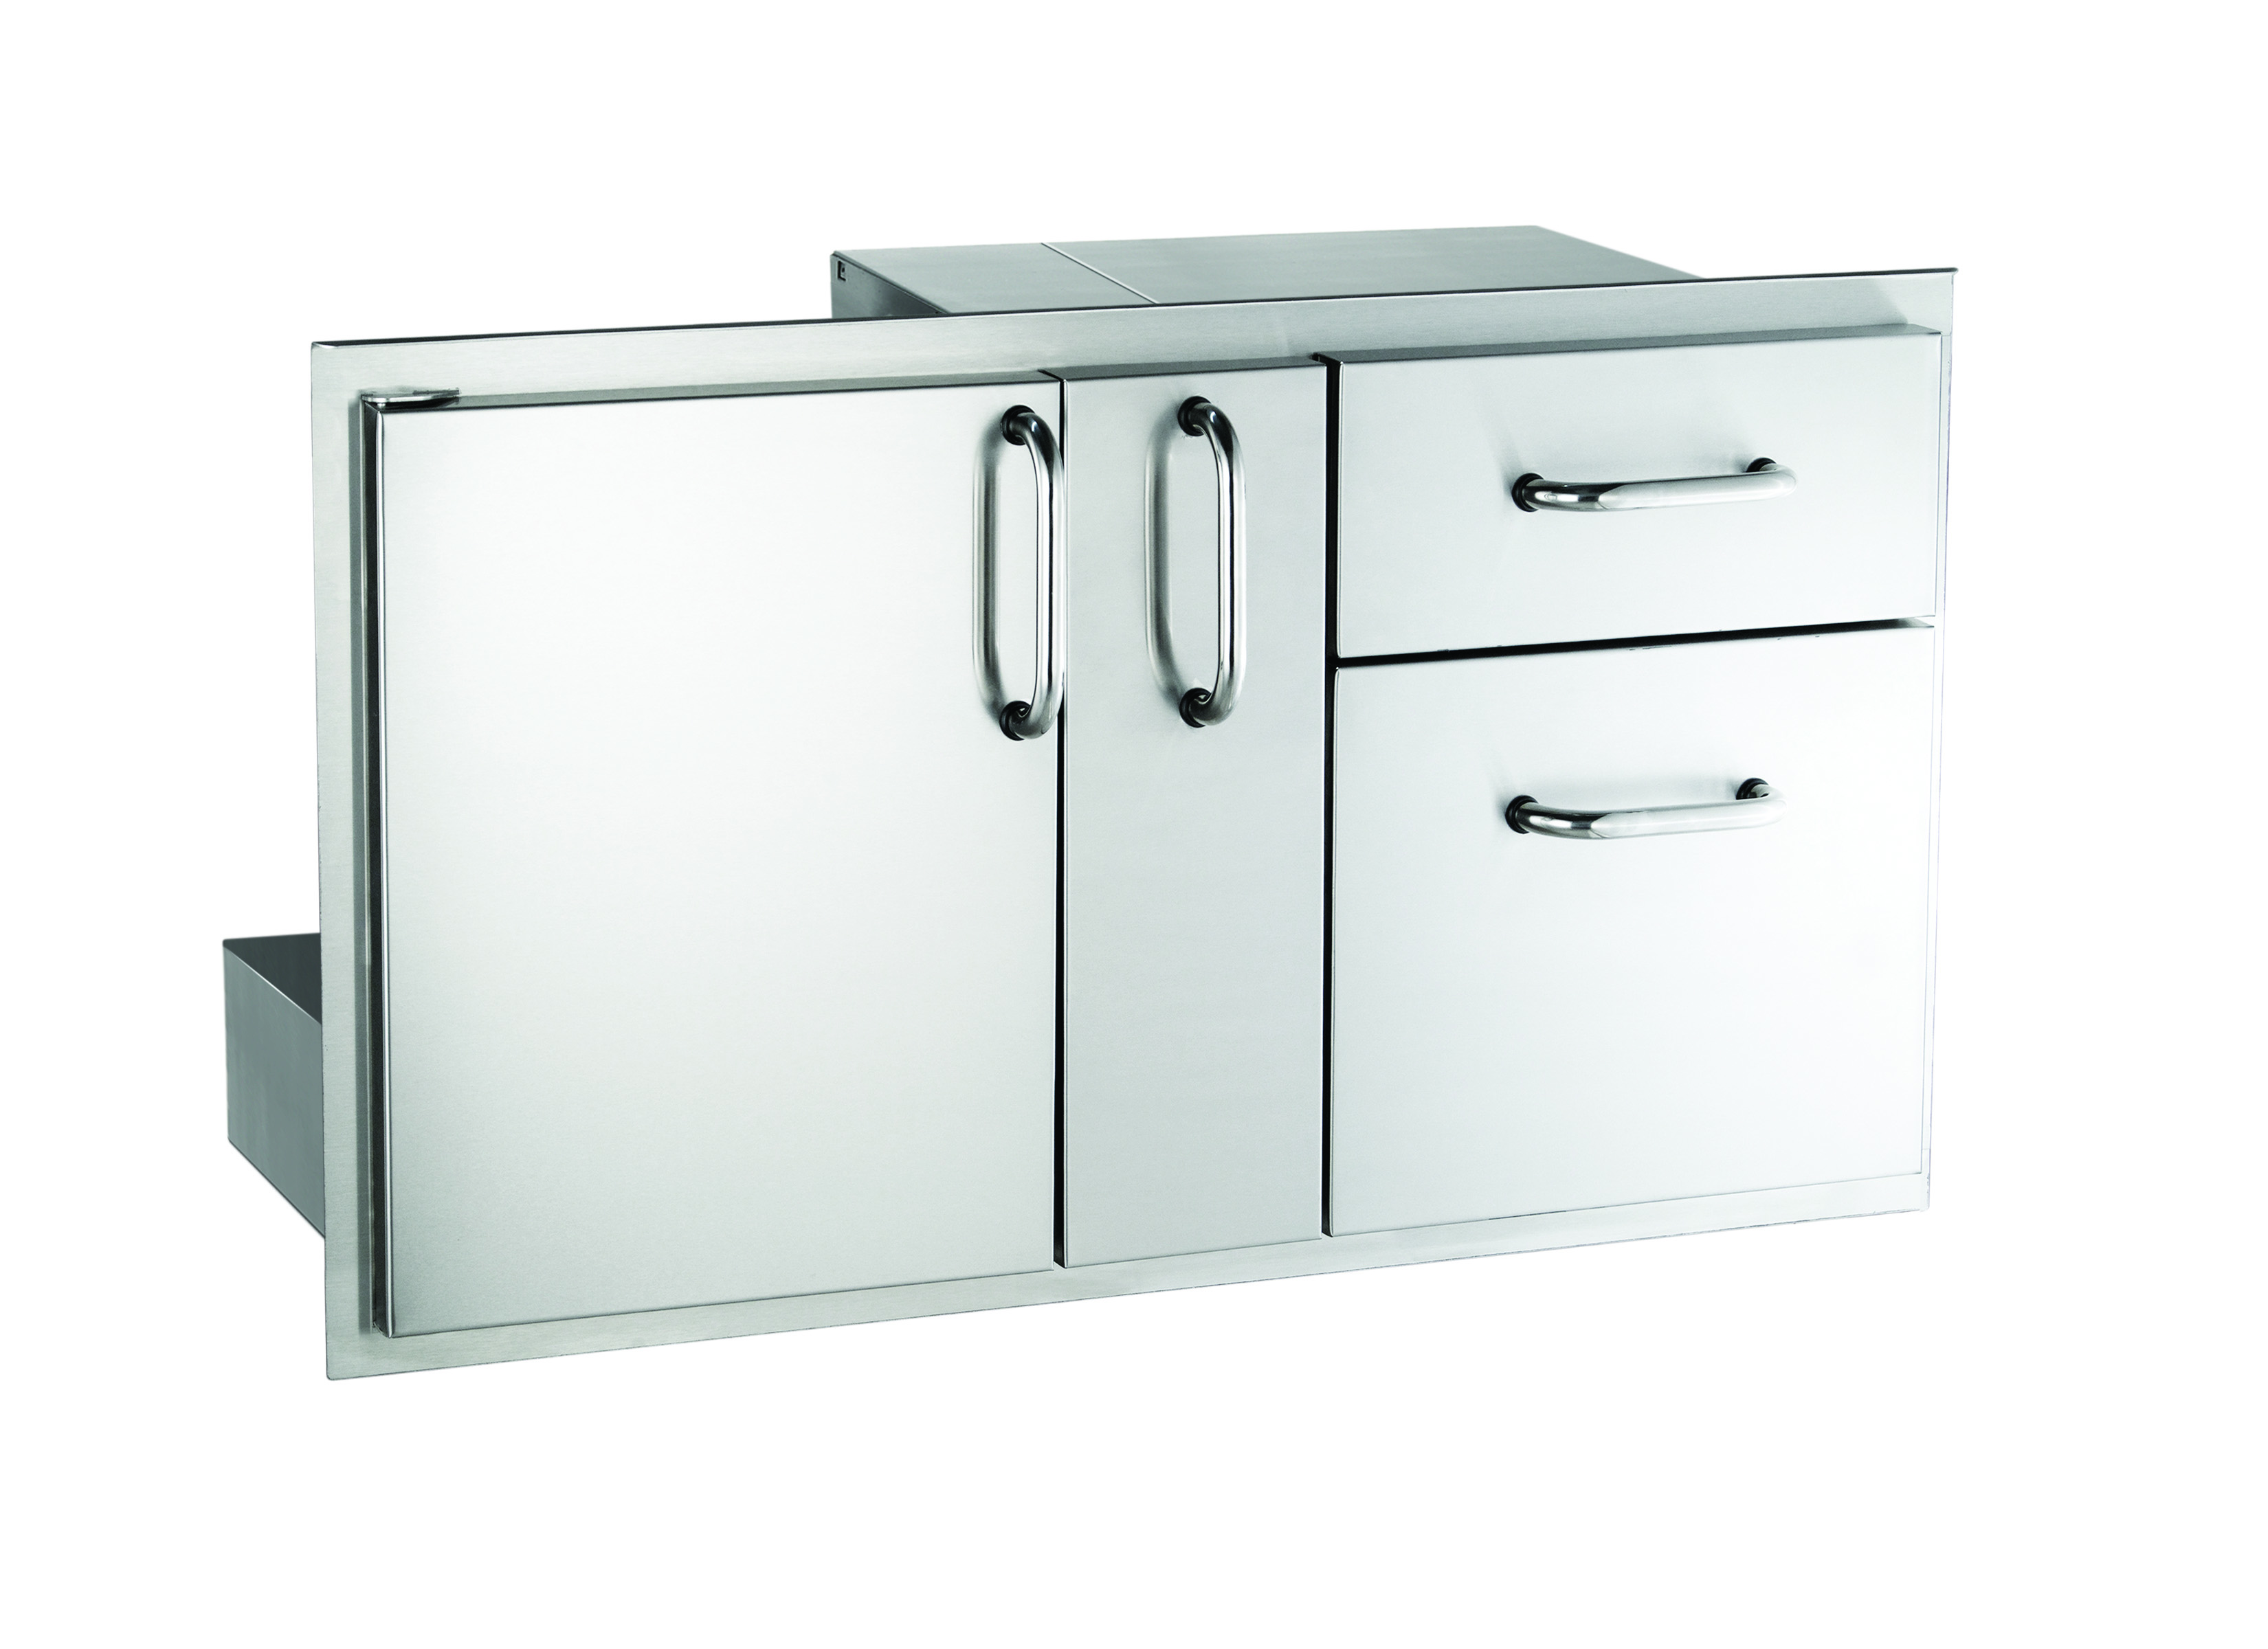 aog-18-36-ssdd-18x36-storage-door-with-double-drawer-and-platter-storage.jpg